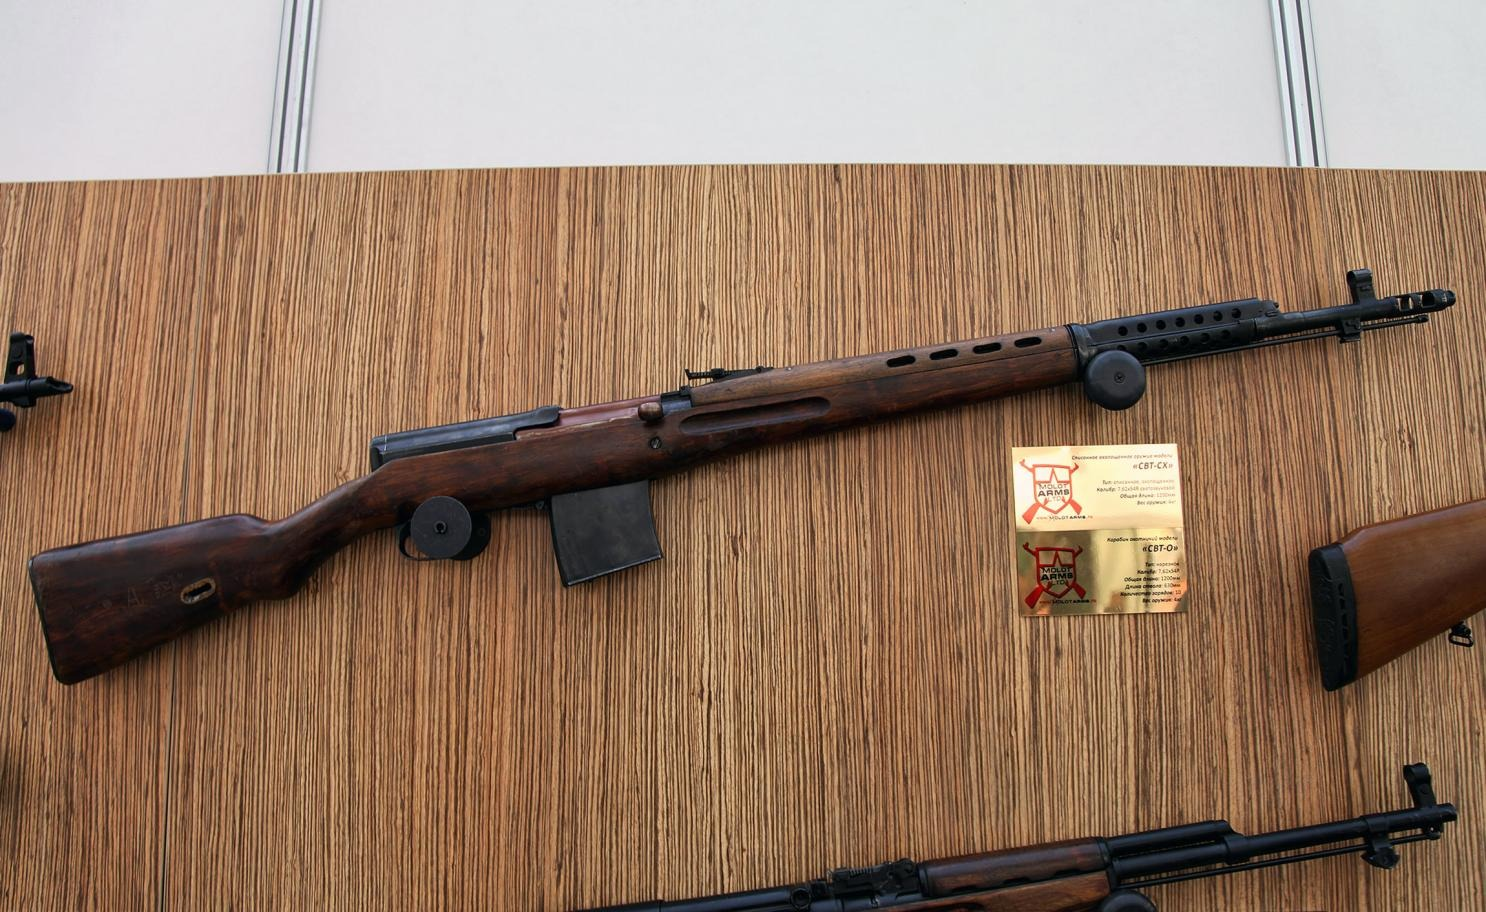 Russia's World War II Nazi-Killer: SVT-40 Semi-Automatic Rifle - Warrior Maven